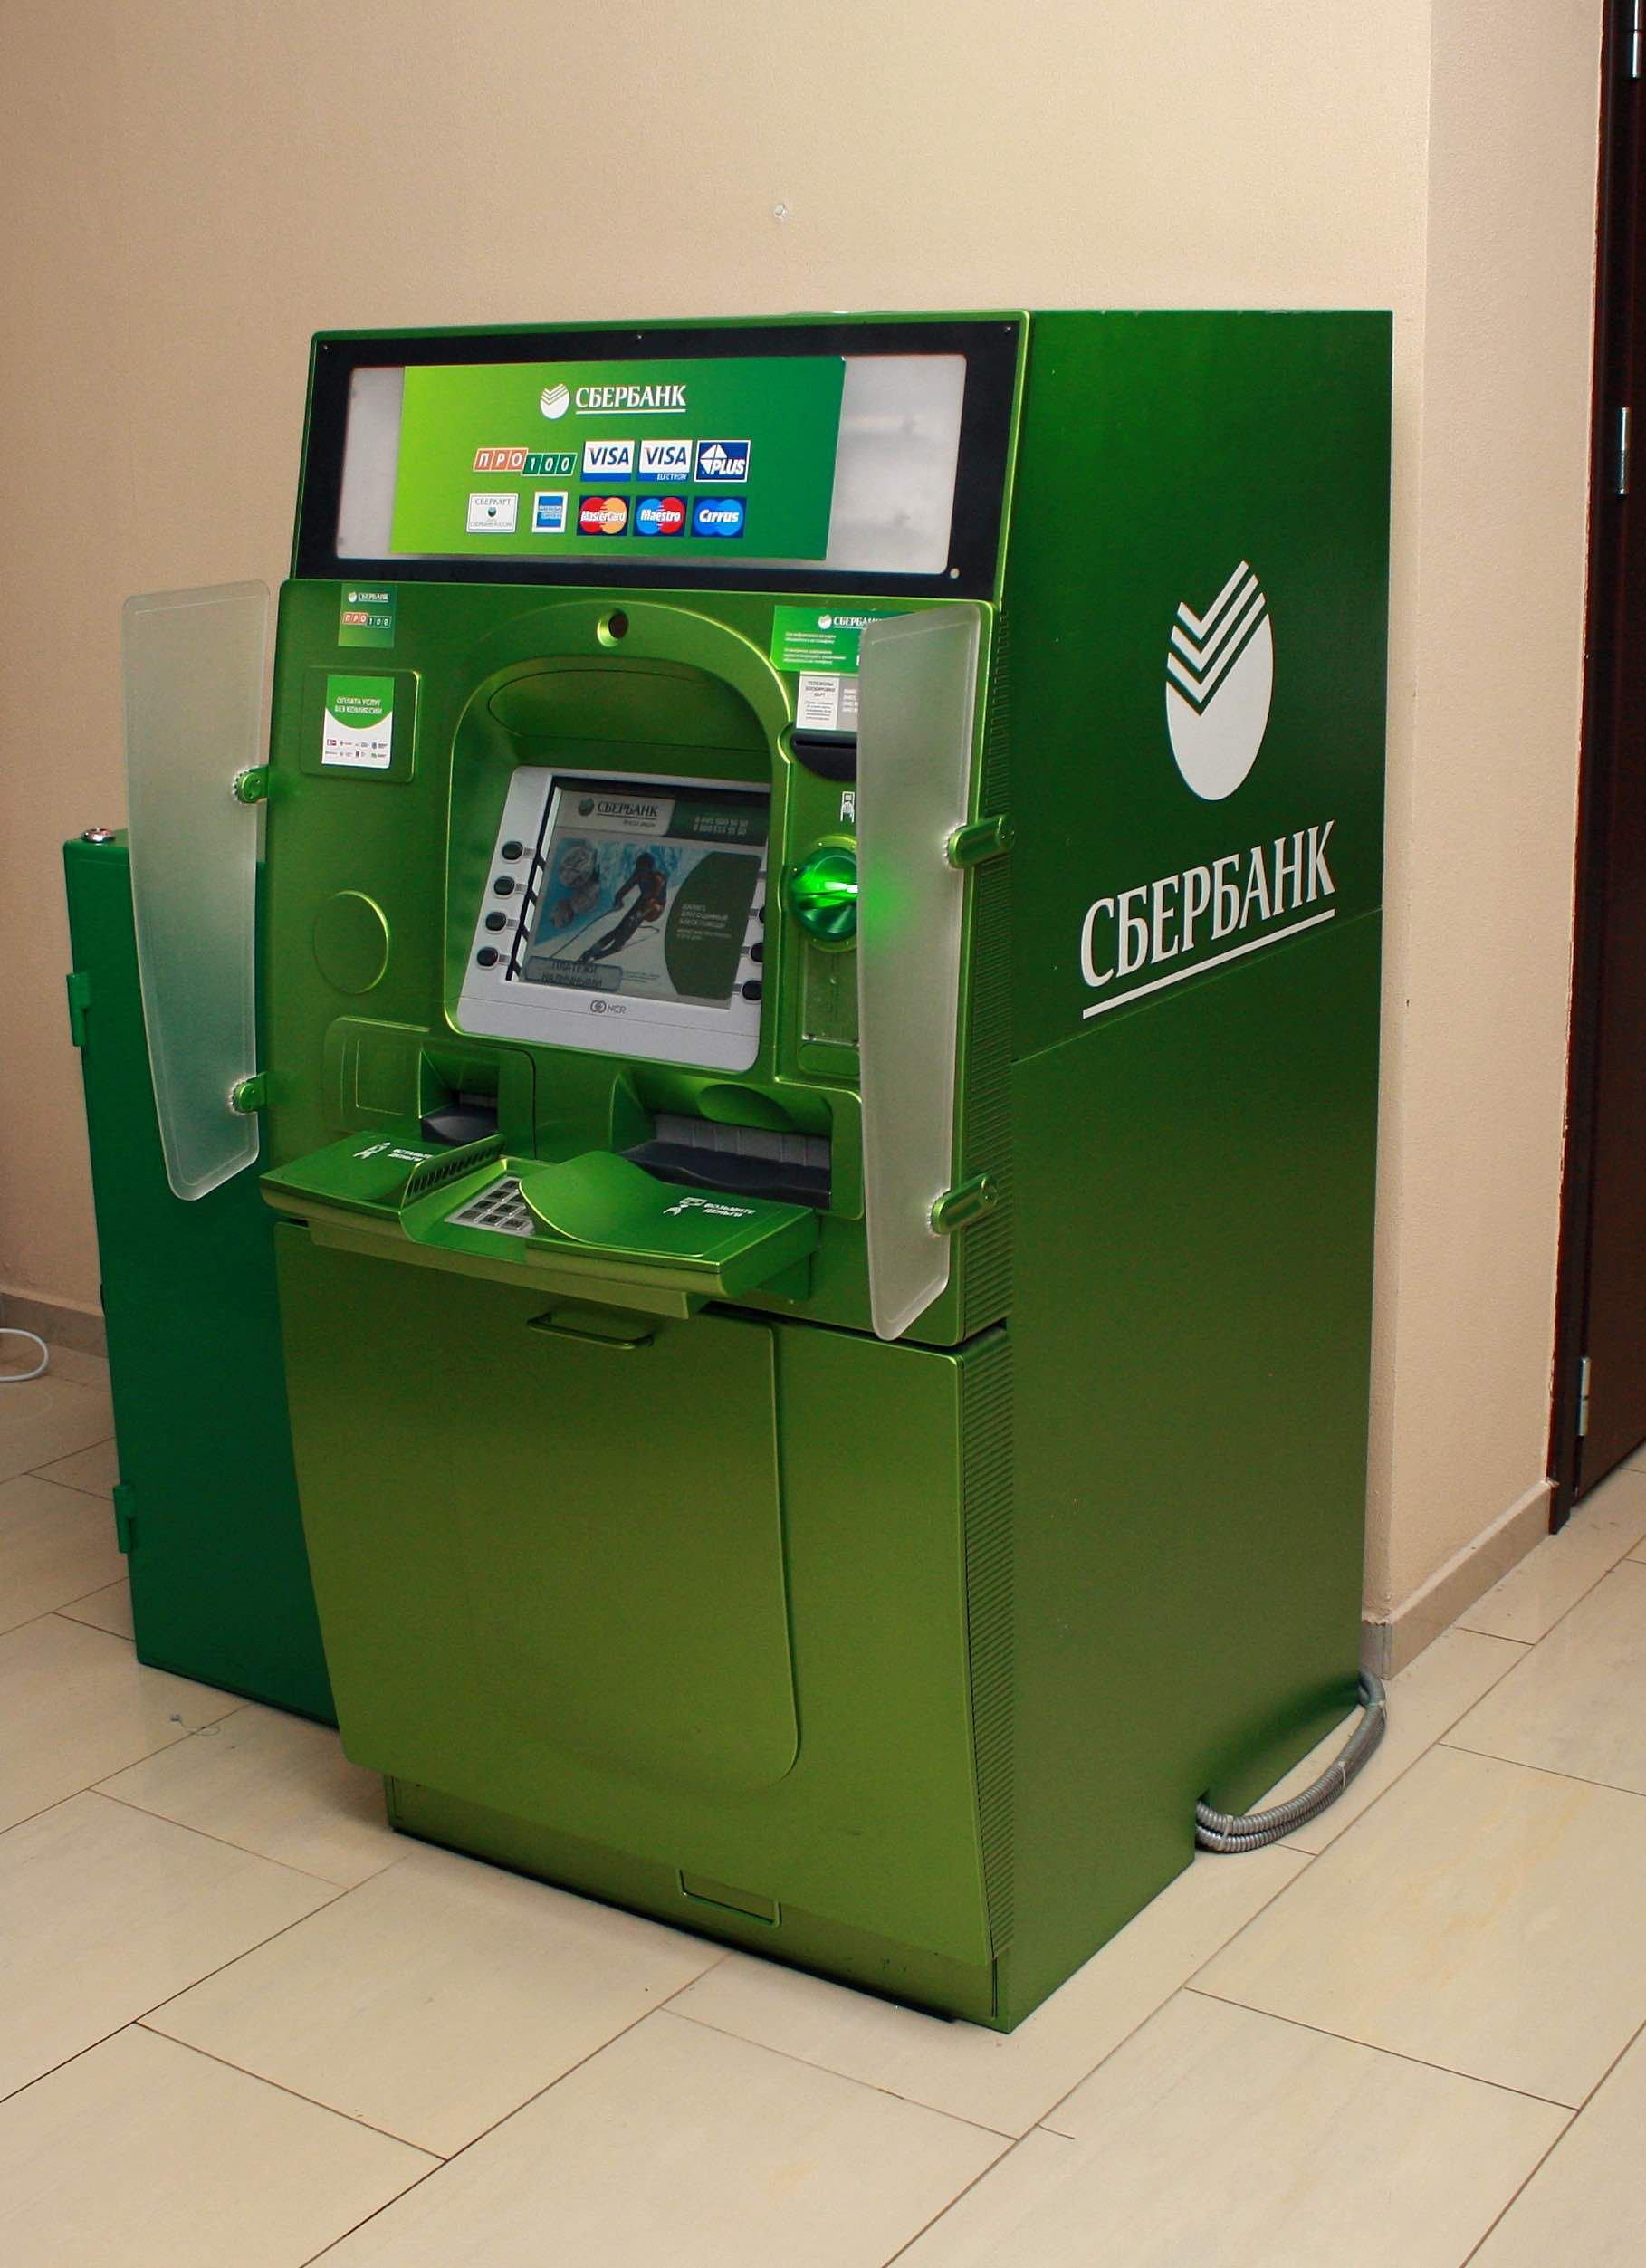 ATM in Russia - Sberbank